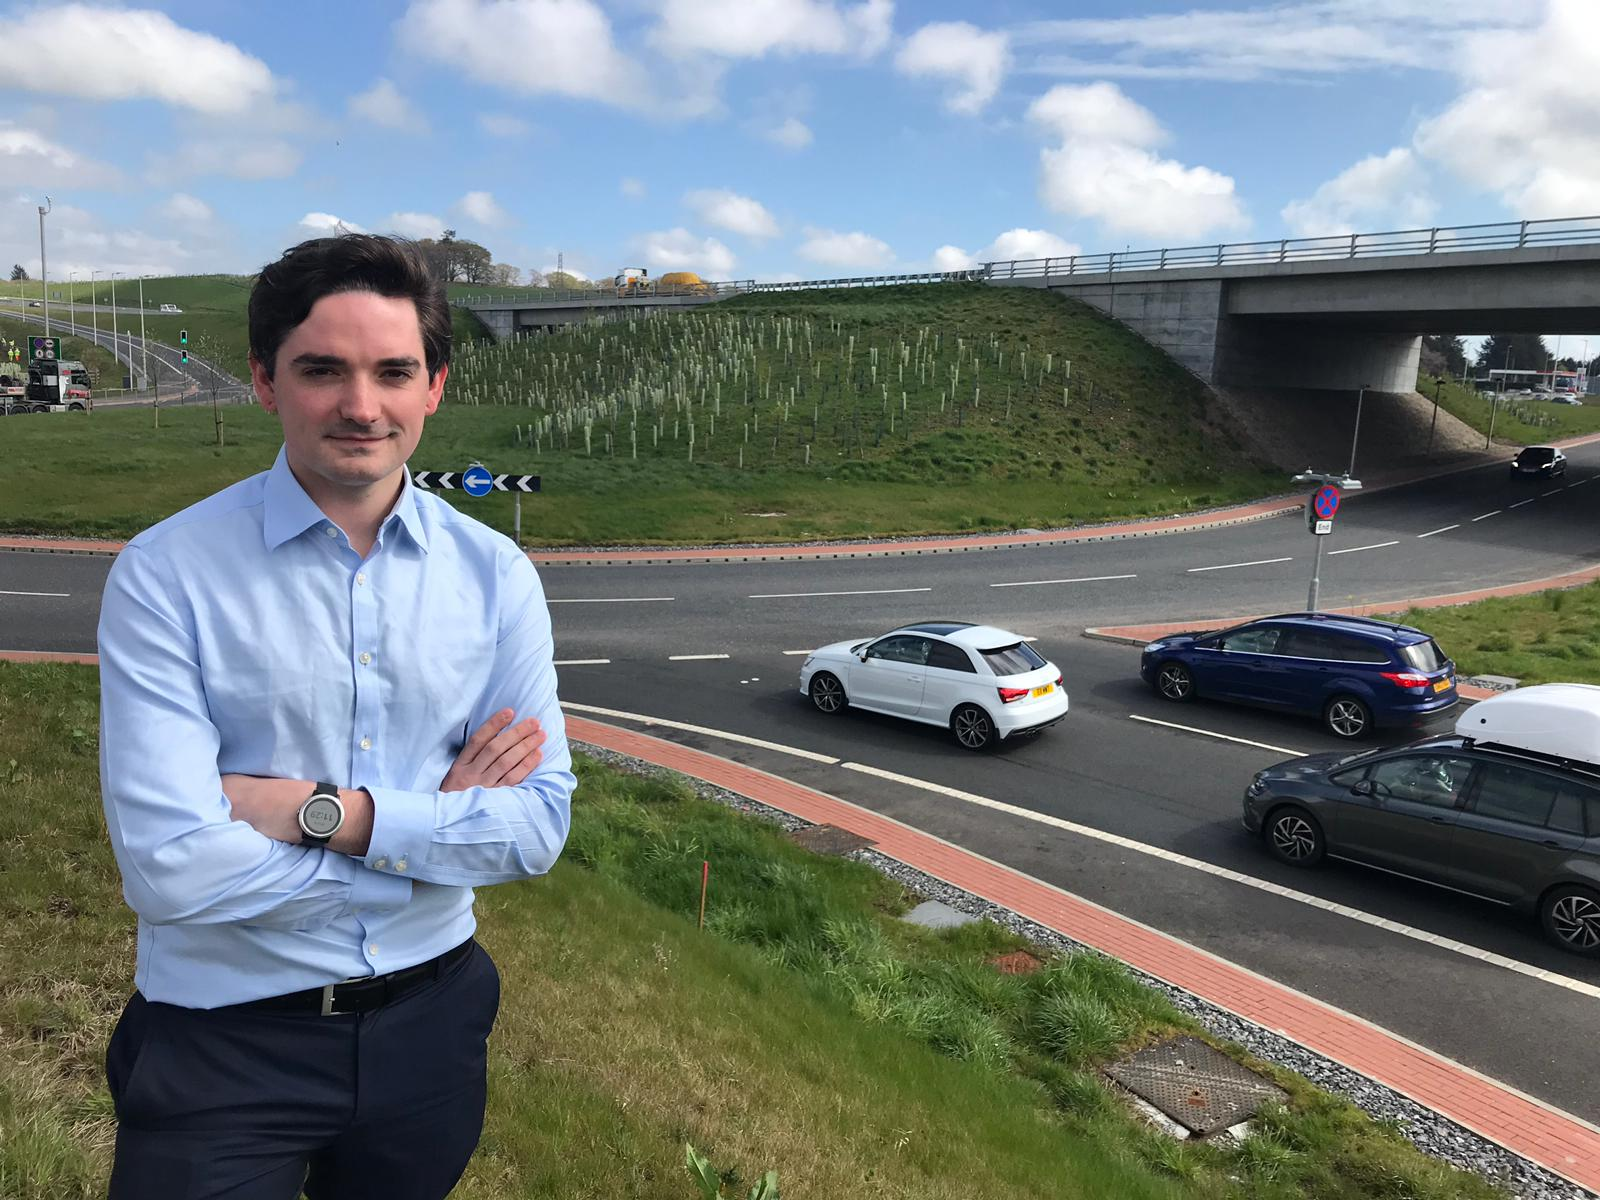 North East Liberal Democrats call for safety review of busy AWRP junctions